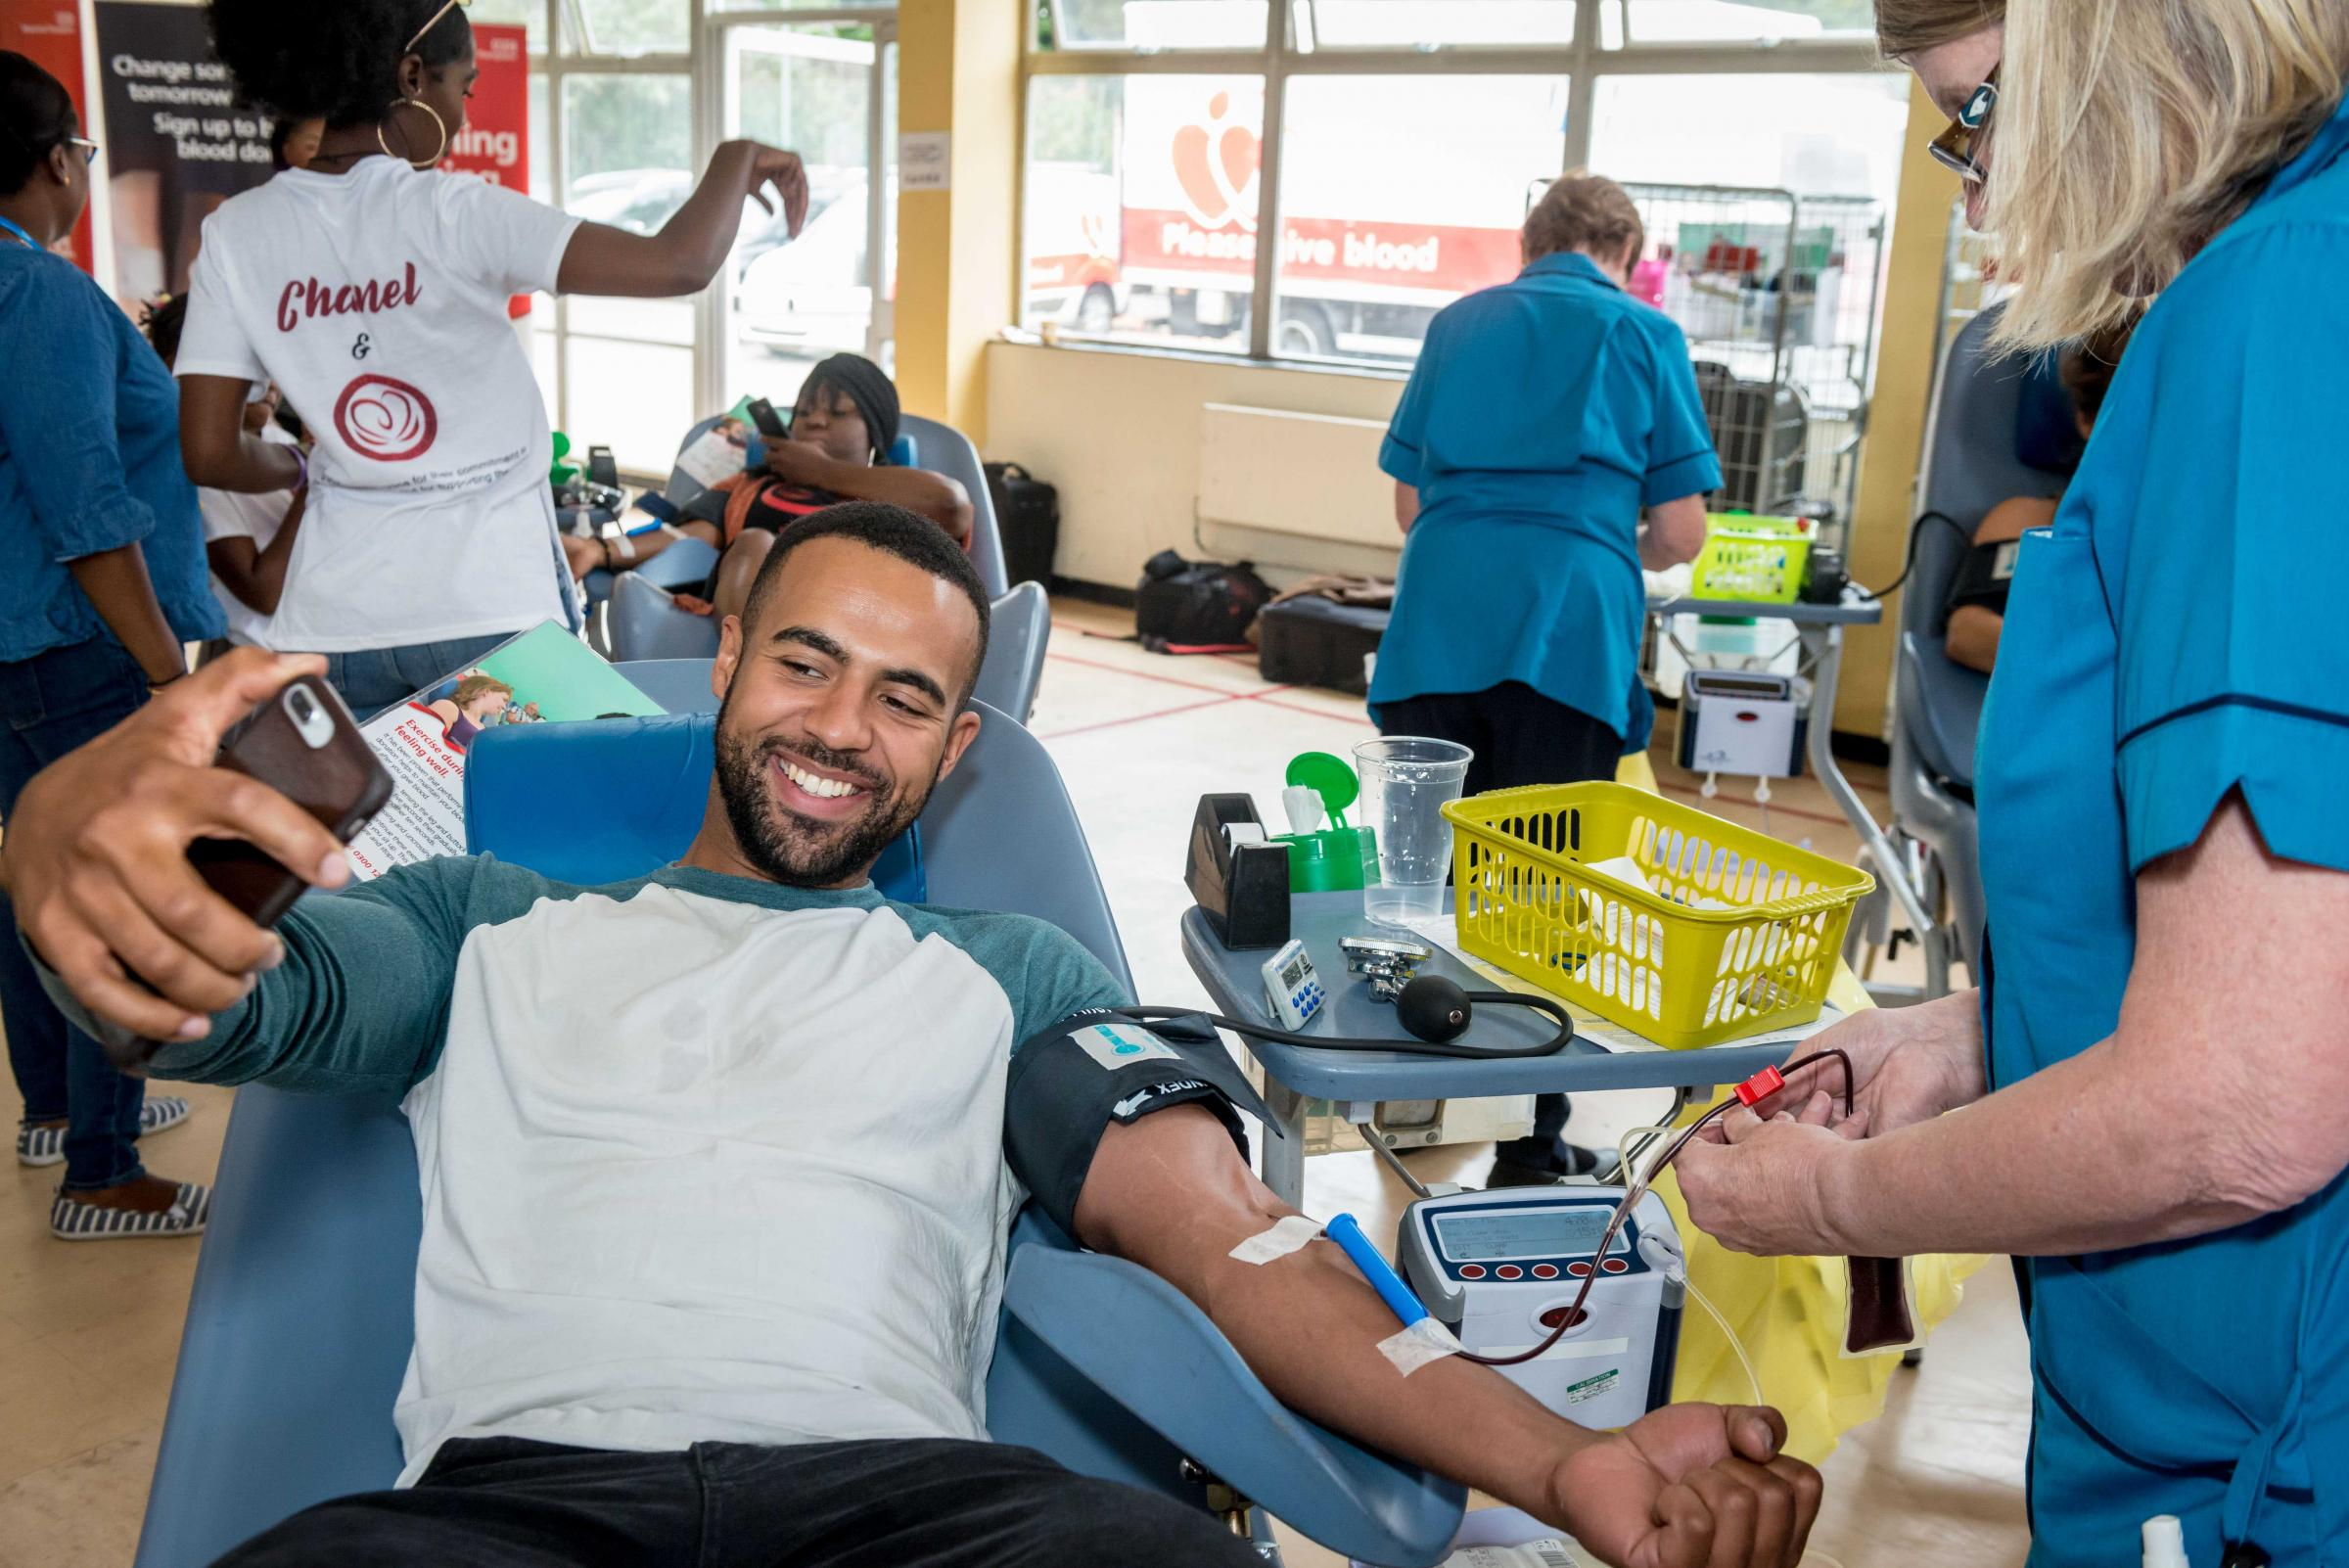 A total of 316 men who registered to be donors in January 2018 gave blood